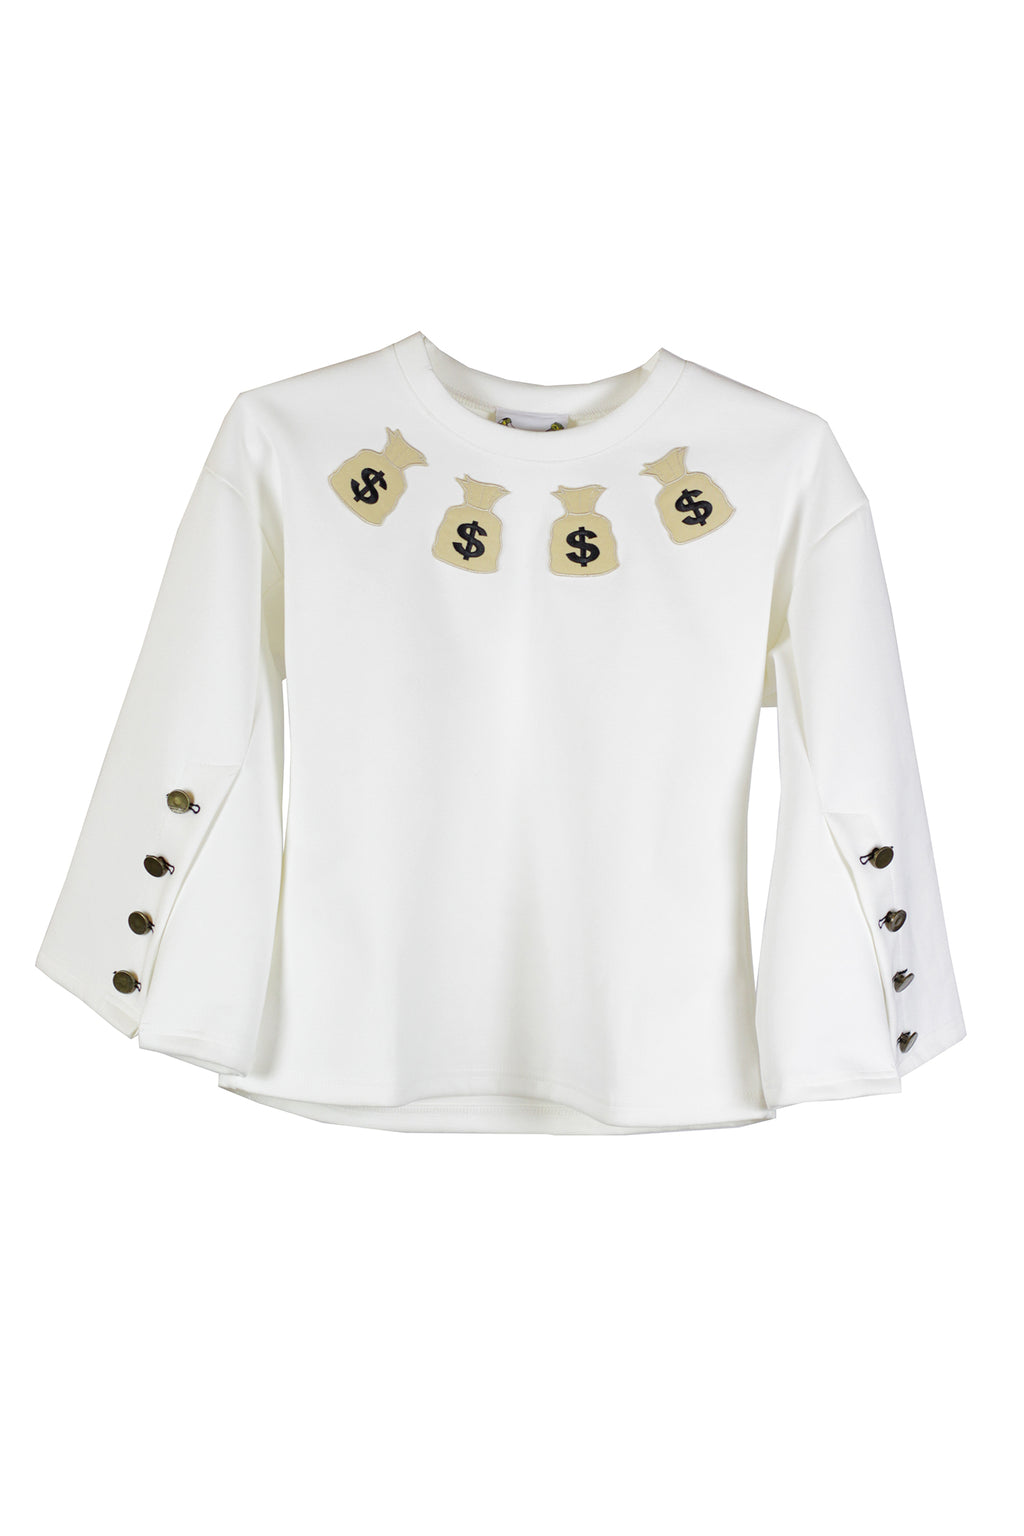 FRIED CHICKEN - White blouse with buttons on the arm and dollar patch